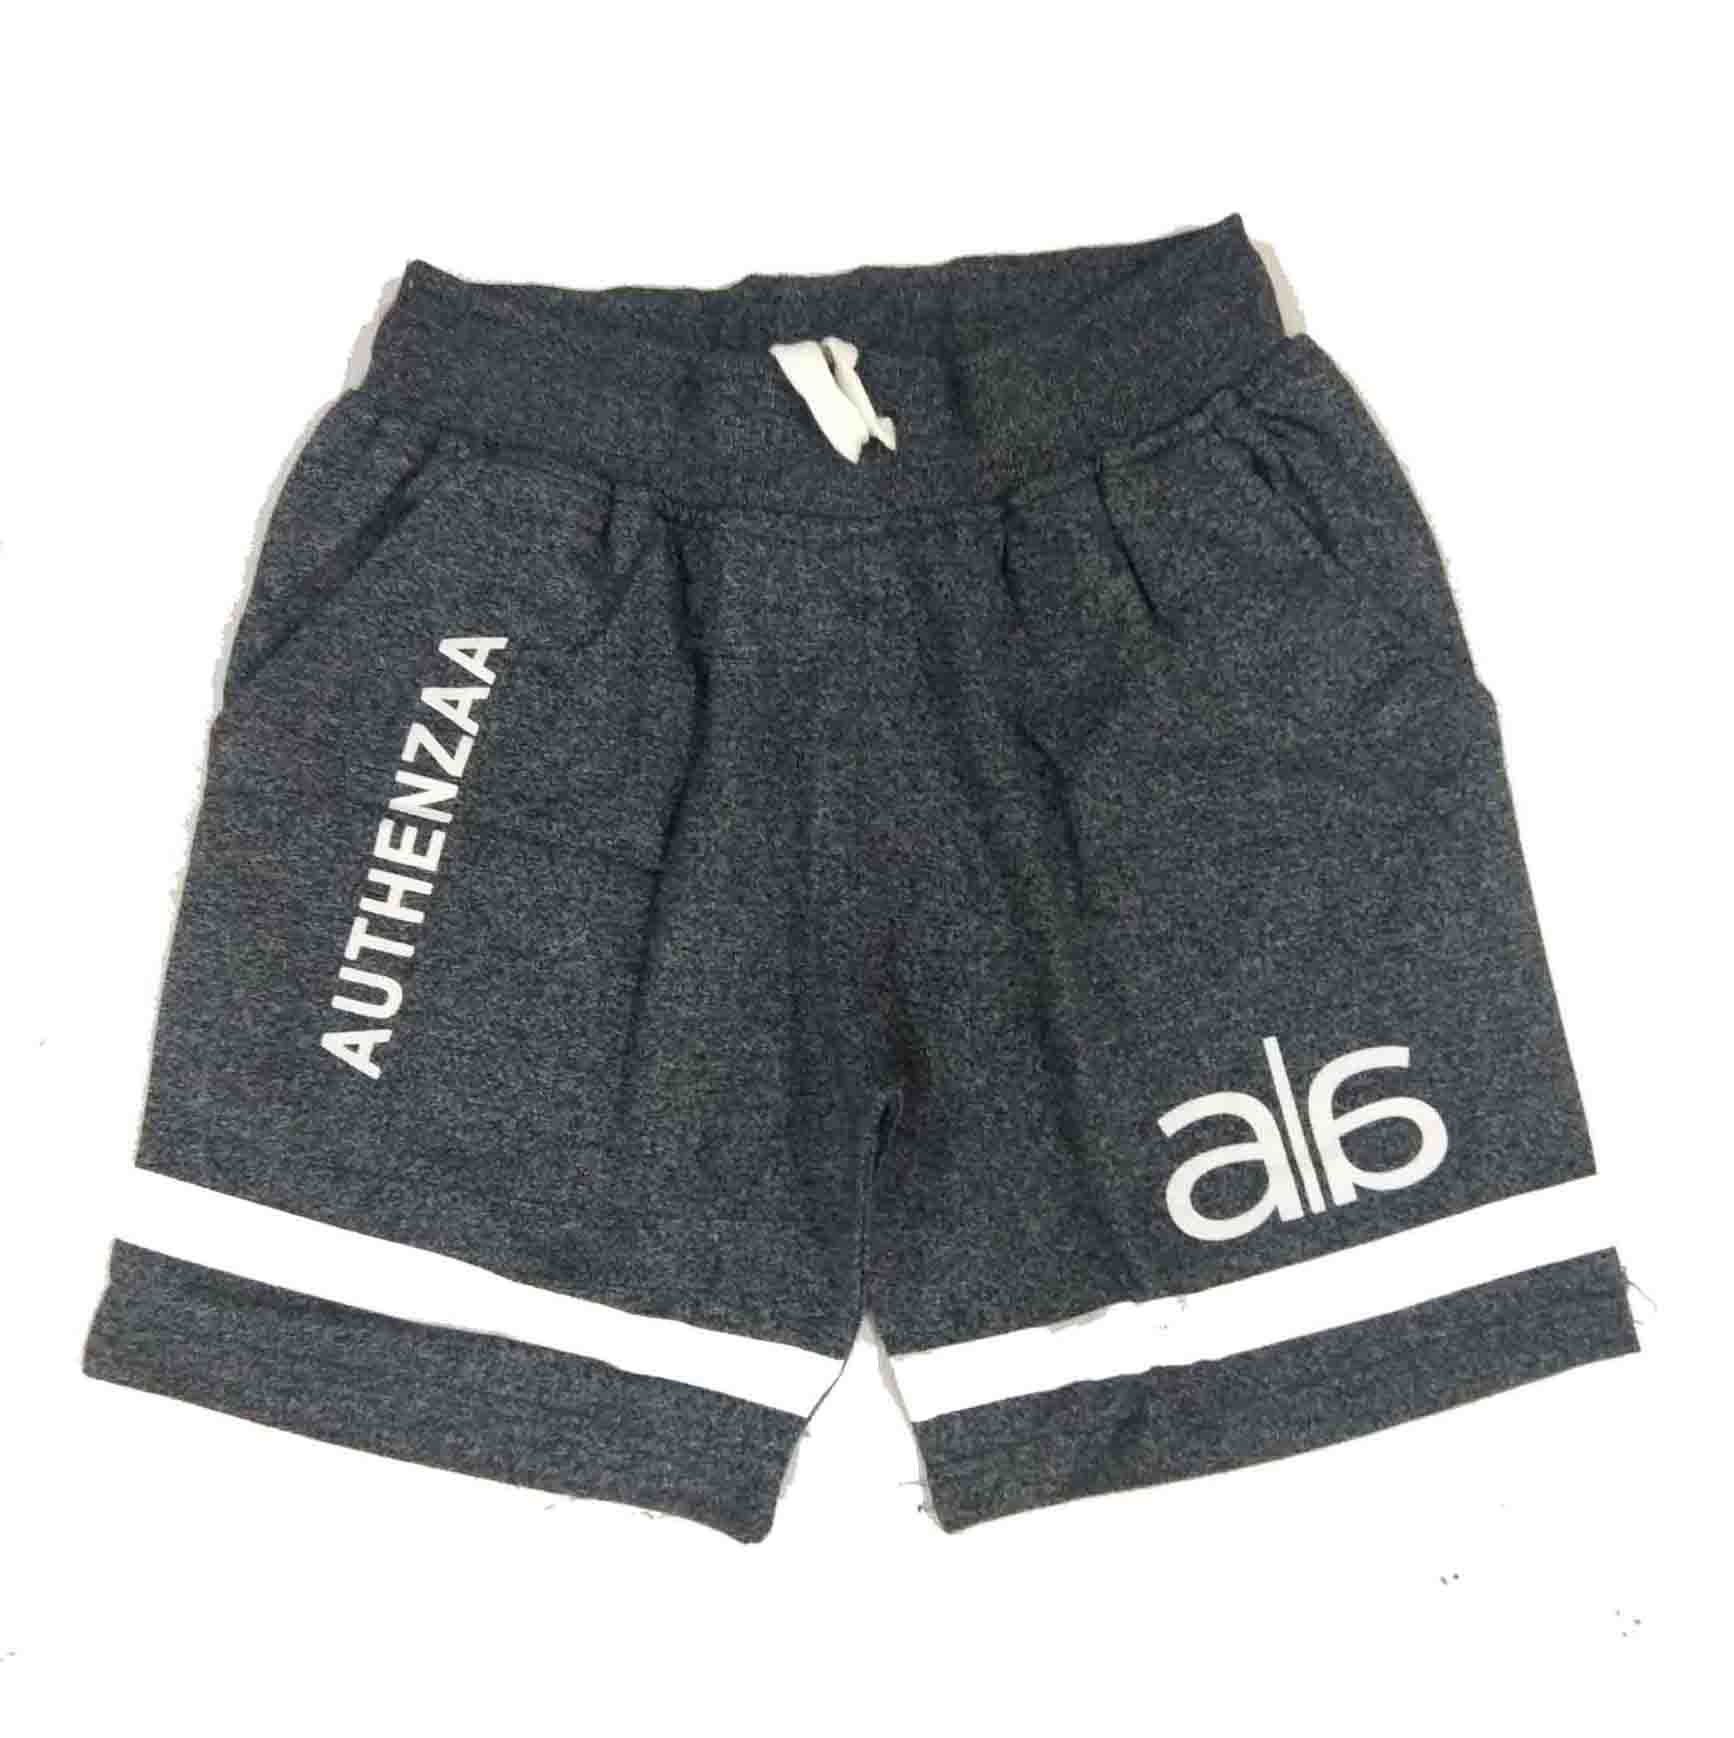 SH GRINDLE 01-NAVY 1-MN SHORTS